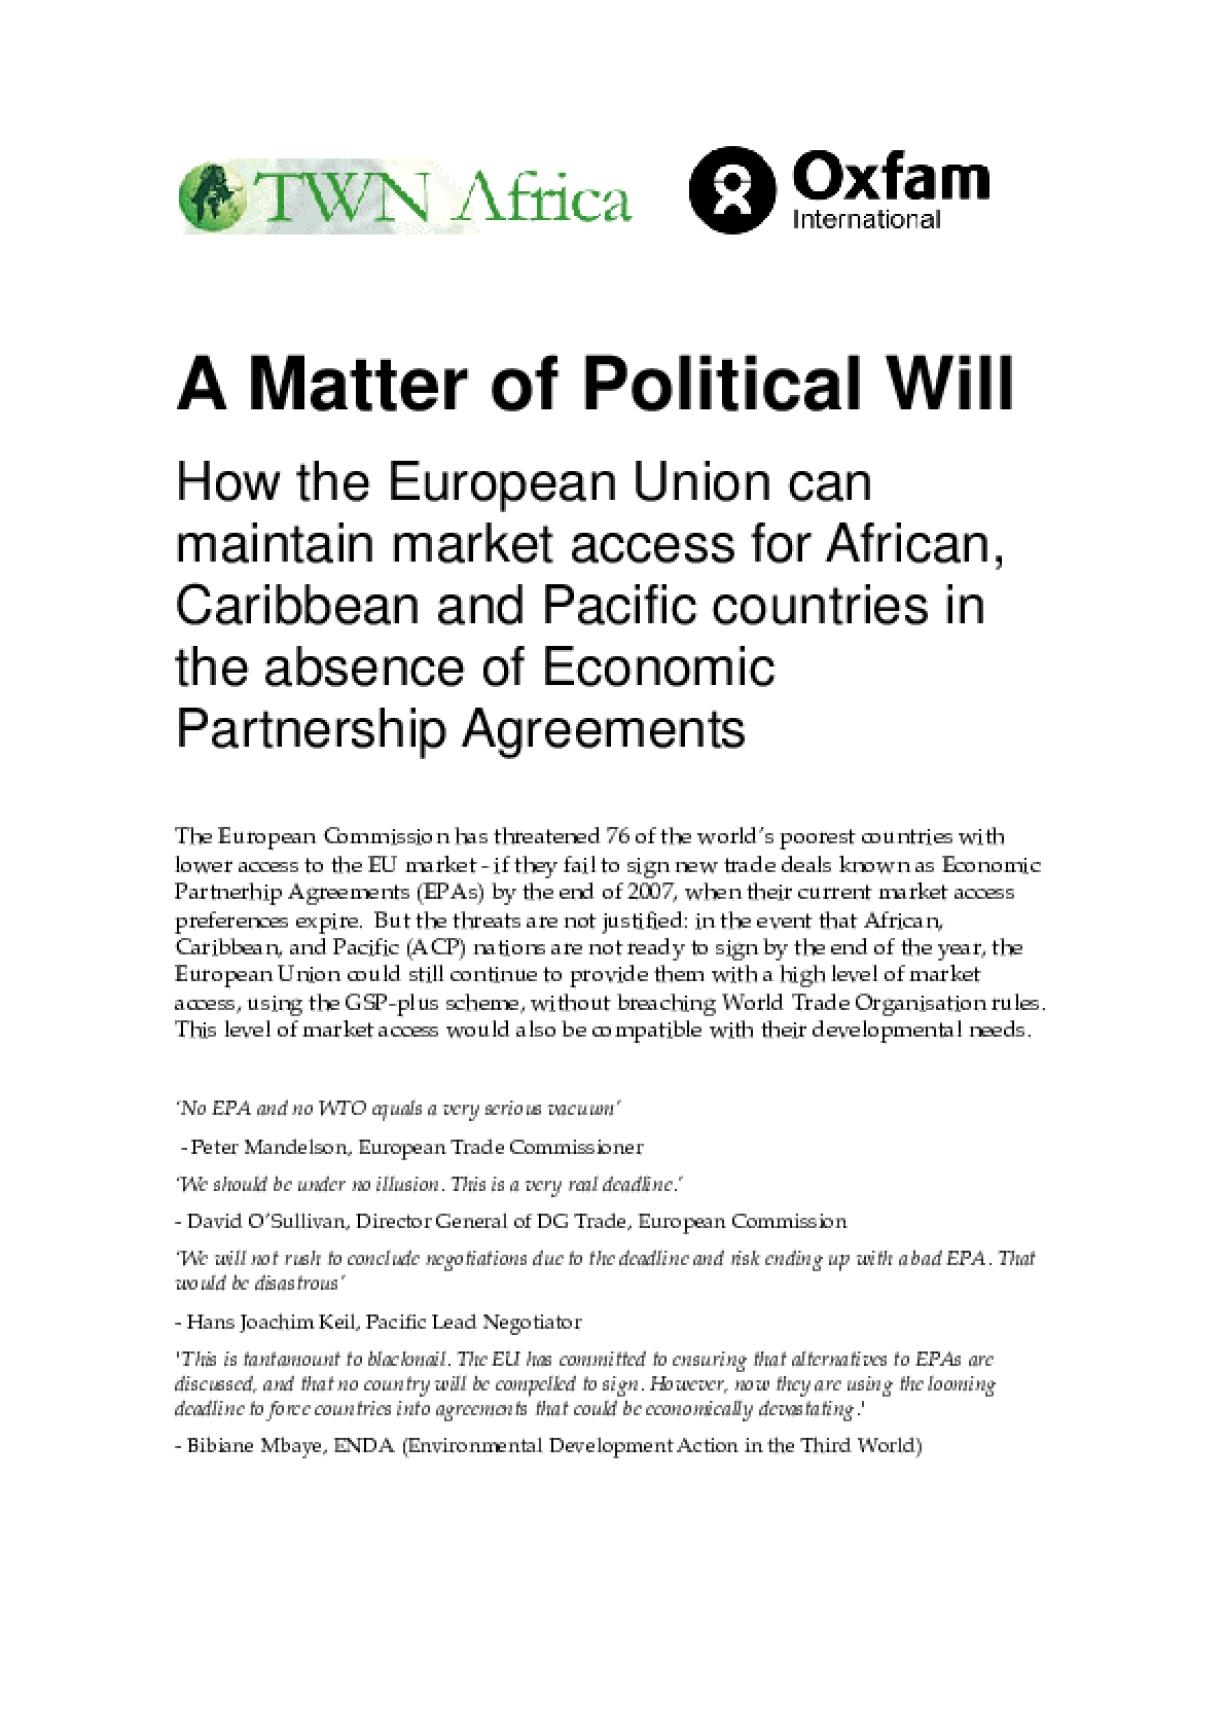 A Matter of Political Will: How the European Union Can Maintain Market Access for African, Caribbean and Pacific Countries in the Absence of Economic Partnership Agreements